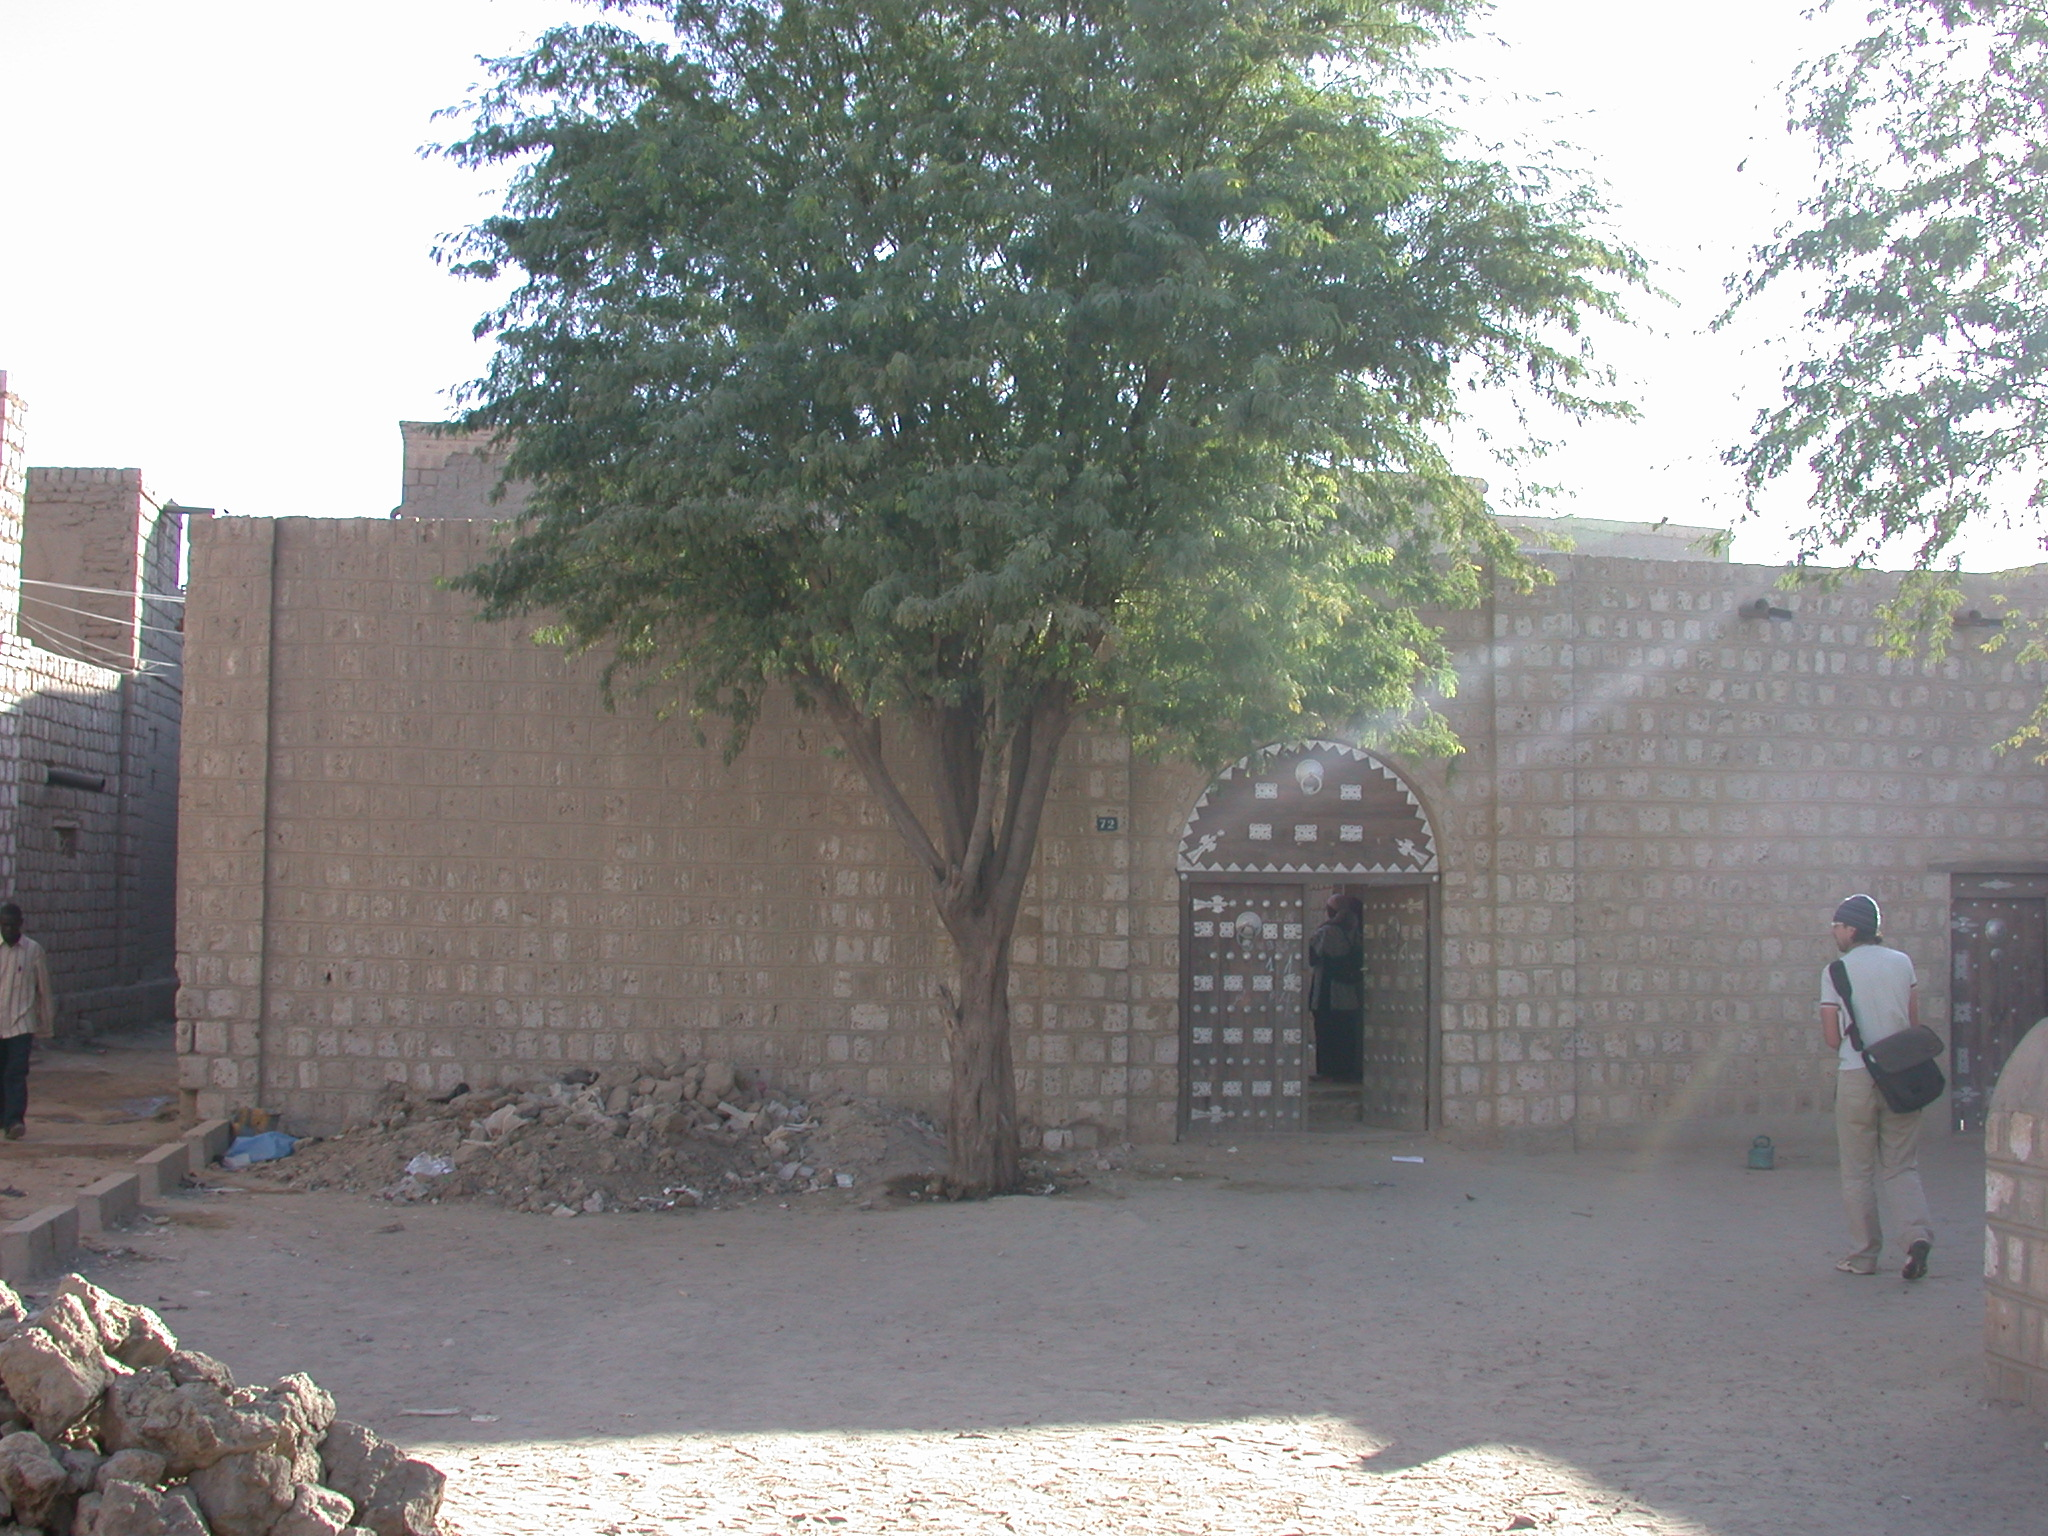 Vincent in Courtyard and School Entrance at Sidi Yahia Mosque, Timbuktu, Mali